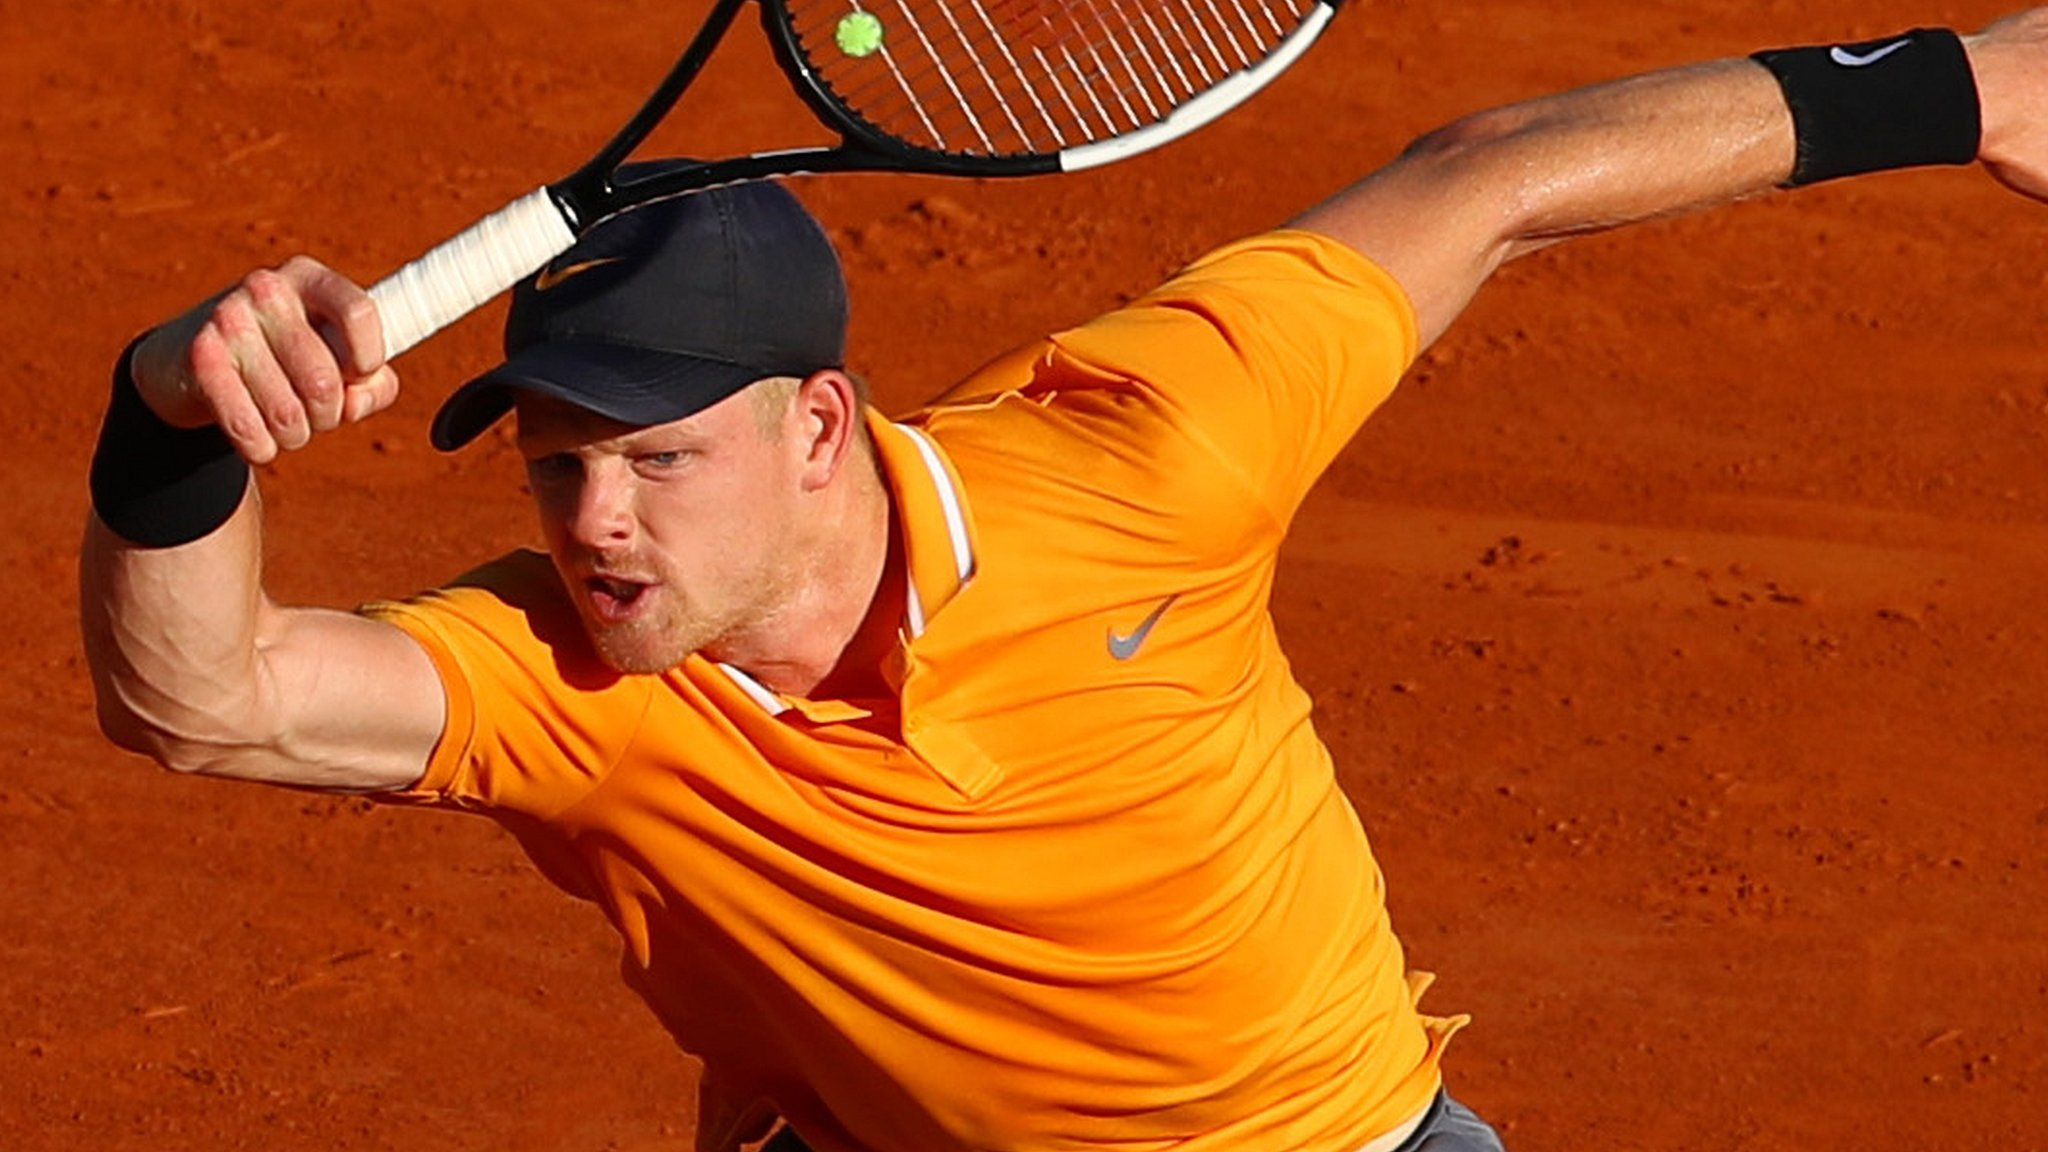 Edmund knocked out in Monte Carlo